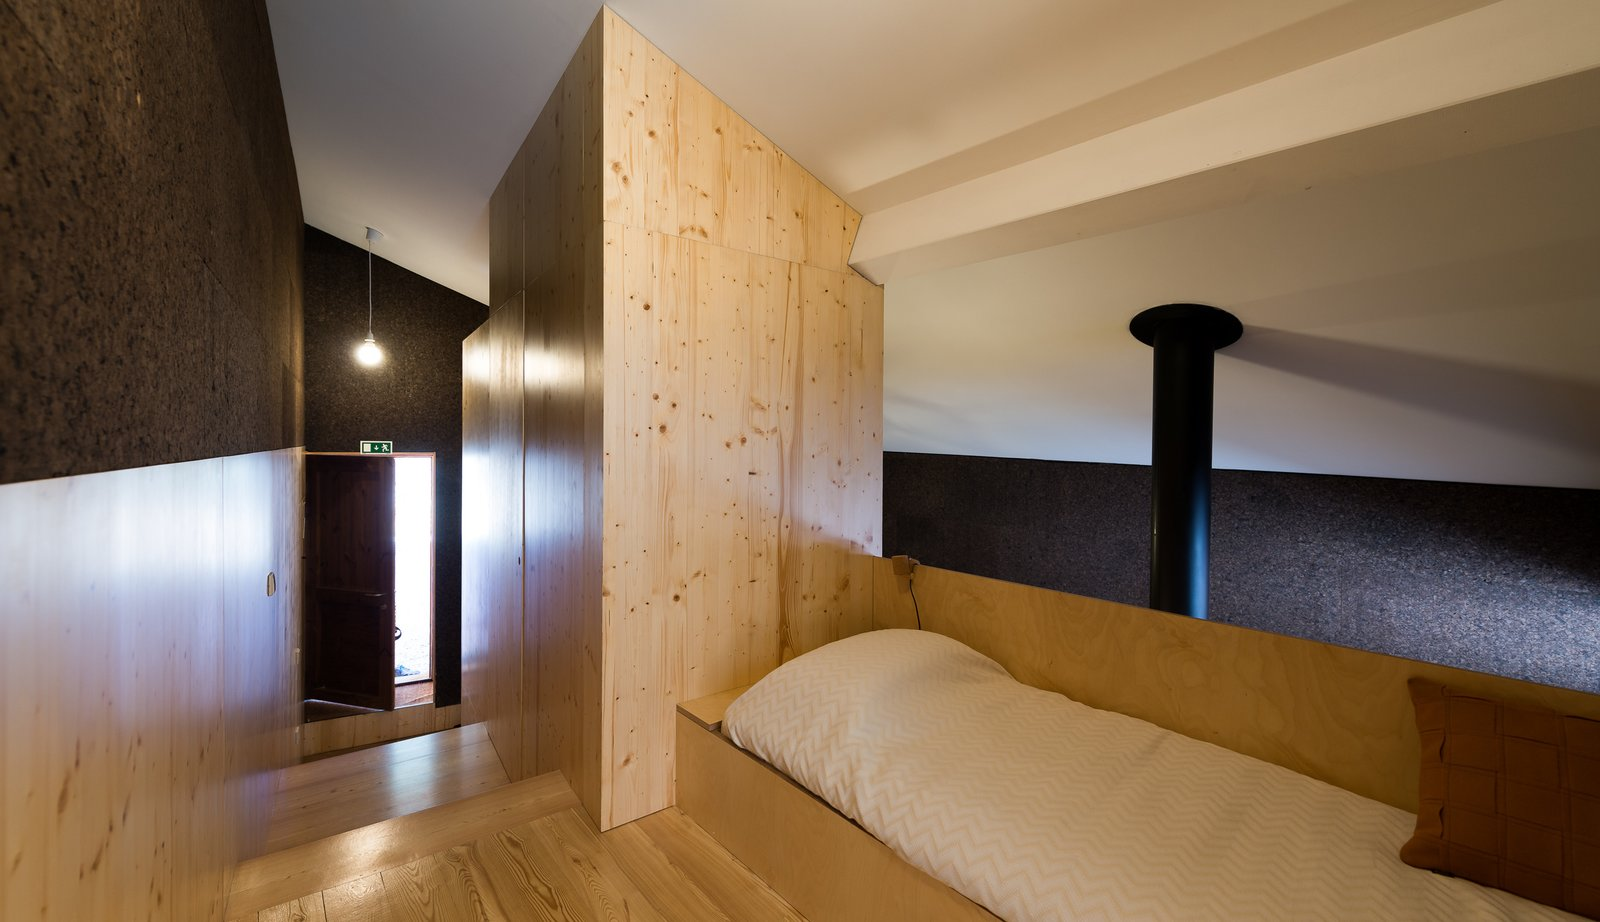 Bedroom, Bed, Pendant Lighting, and Light Hardwood Floor  Photo 10 of 16 in Stay in a Tiny, Eco-Friendly House in a Portuguese Schist Village